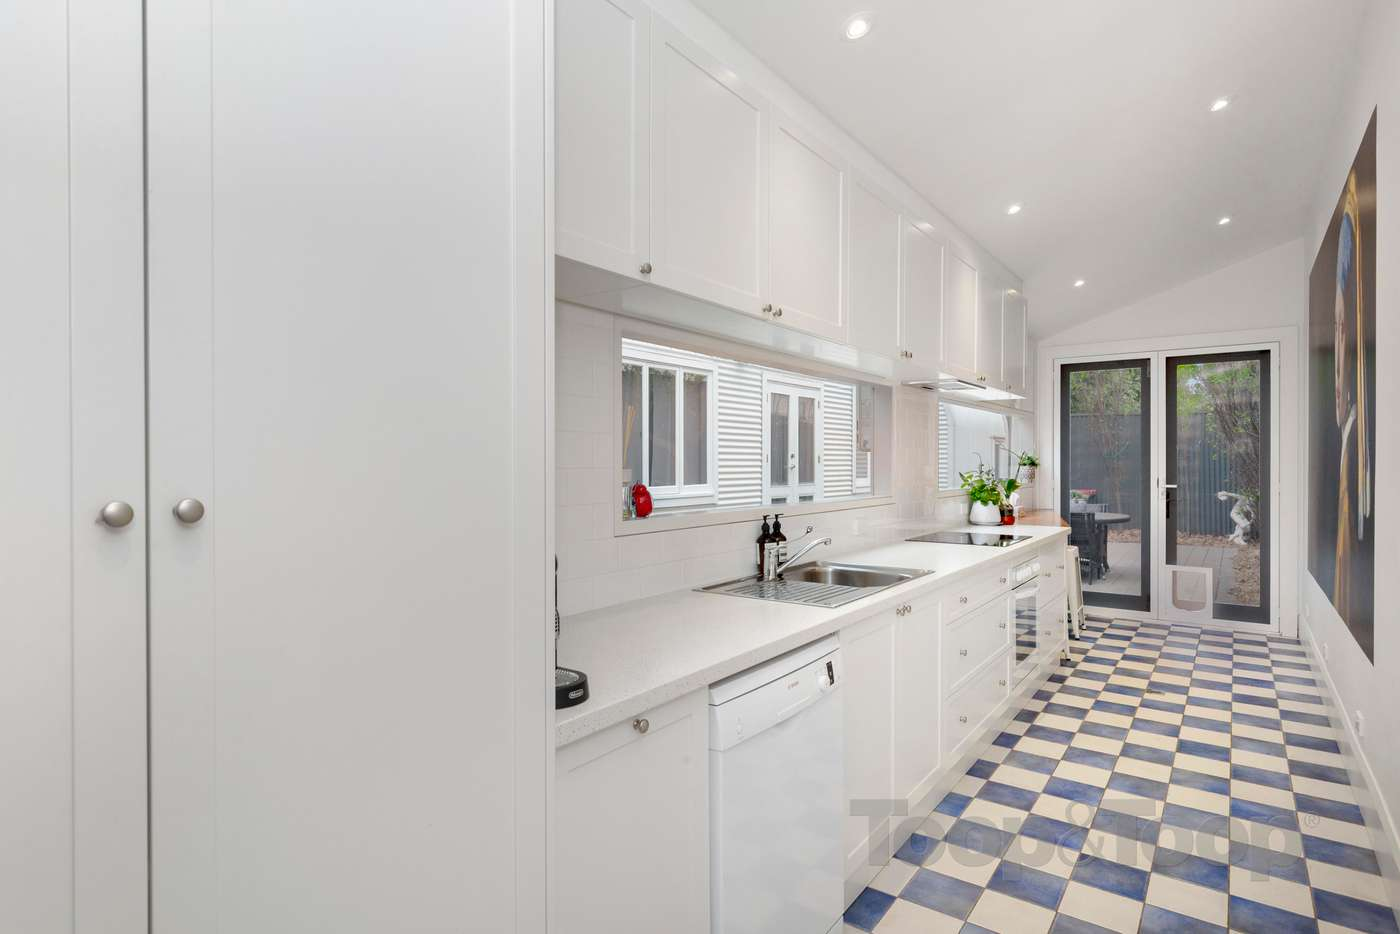 Fifth view of Homely house listing, 5 Harris Street, Norwood SA 5067